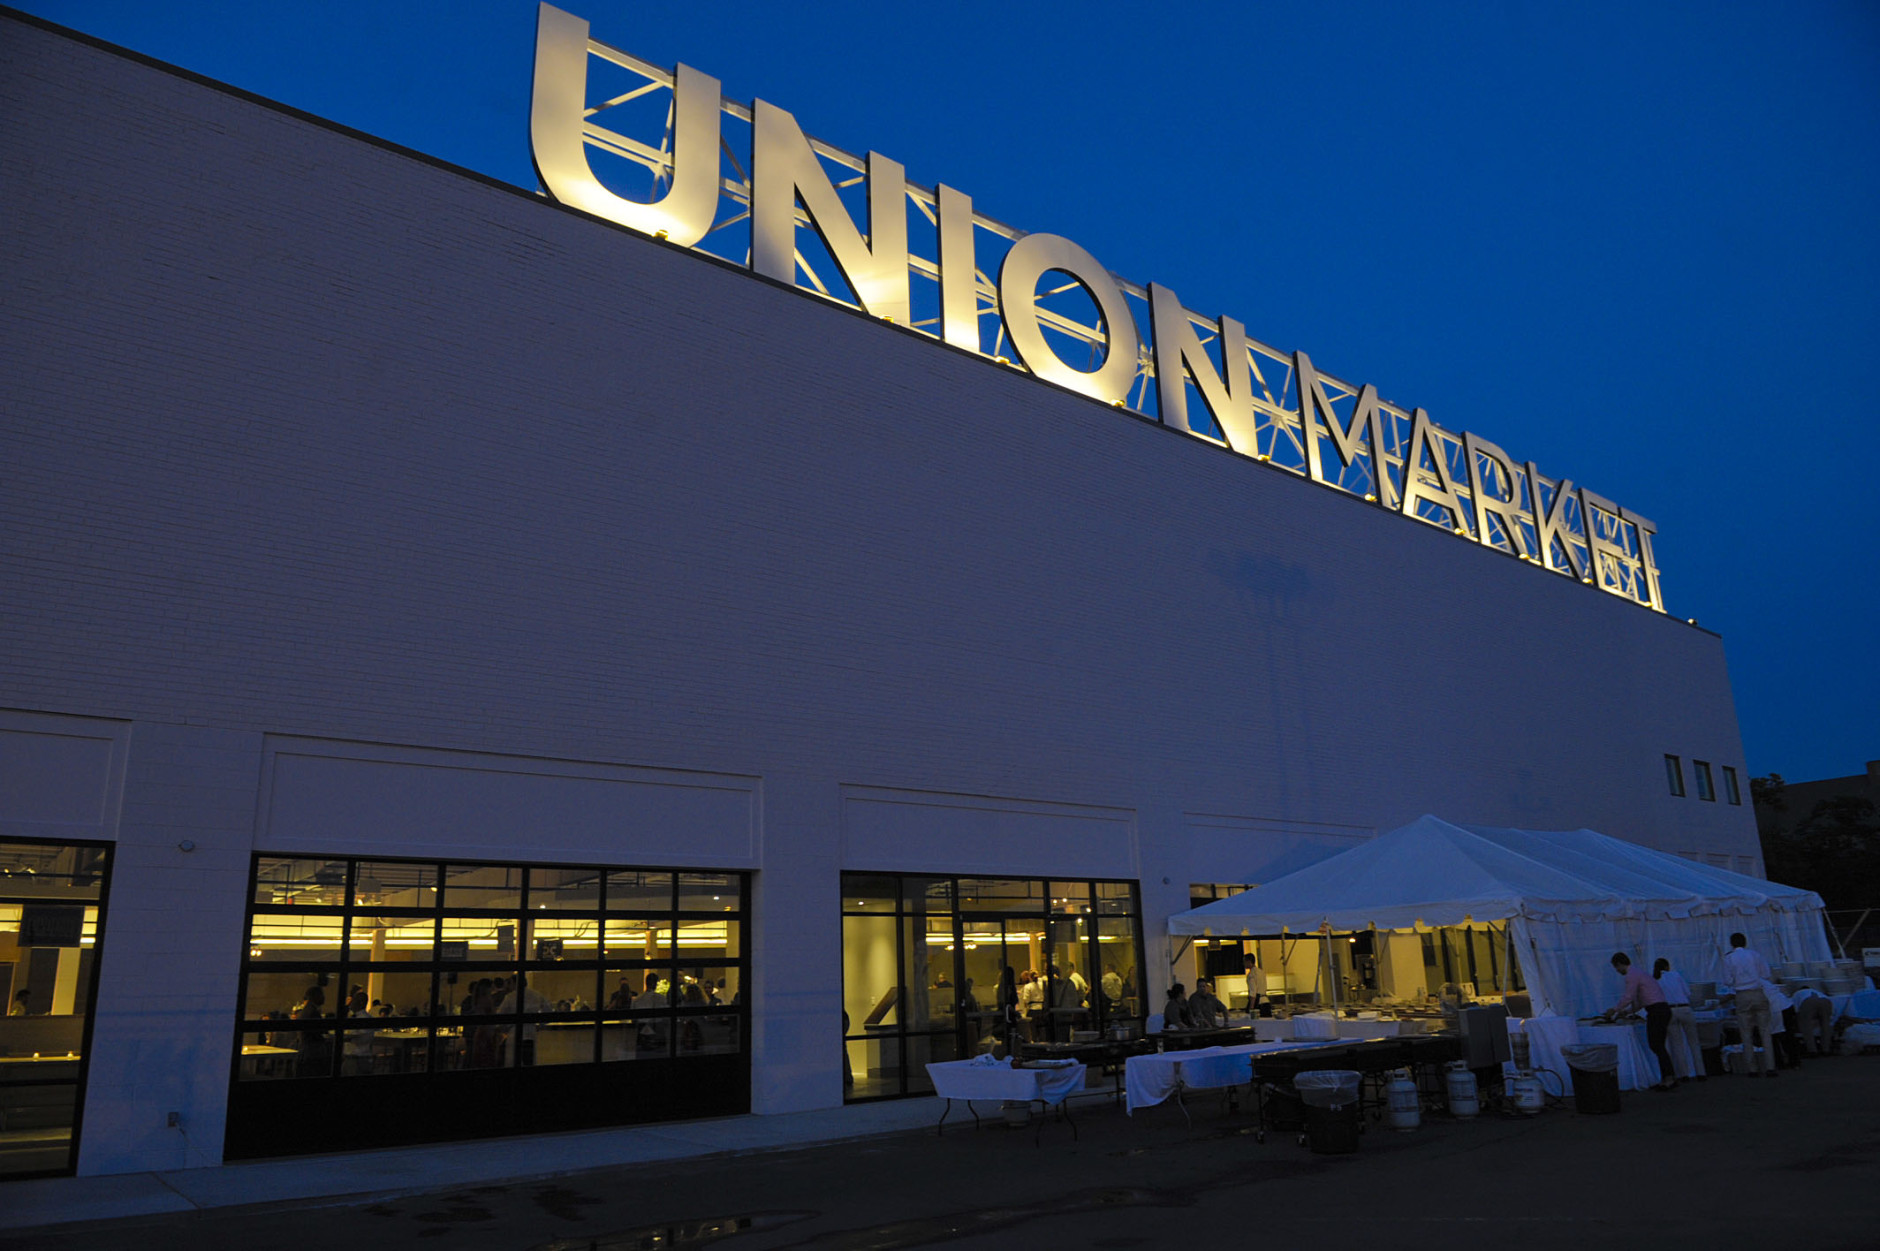 """<p><strong>Take a trip to Union Market …</strong></p> <p>D.C.&#8217;s <a href=""""http://unionmarketdc.com/"""" target=""""_blank"""" rel=""""noopener noreferrer"""">Union Market</a> is a food-lover&#8217;s paradise under one roof. And when parents or family come into town, it&#8217;s one of the best places to take a crowd for lunch, because there&#8217;s no need to agree on one cuisine.</p> <p>Your vegetarian brother can chow down on some curry potatoes at <a href=""""http://www.dcdosa.com/"""" target=""""_blank"""" rel=""""noopener noreferrer"""">DC Dosa</a>or spicy tofu tacos at <a href=""""http://takorean.com/"""" target=""""_blank"""" rel=""""noopener noreferrer"""">TaKorean</a>, while your meat-loving father can overindulge on one of Nathan Anda&#8217;s famous porkstrami sandwiches at <a href=""""http://www.redapronbutchery.com/"""" target=""""_blank"""" rel=""""noopener noreferrer"""">Red Apron</a>. Mom can peruse the tablescapes and décor options at <a href=""""http://www.shopsaltandsundry.com/"""" target=""""_blank"""" rel=""""noopener noreferrer"""">Salt &amp; Sundry</a>, while you relax with some oysters and bubbly at <a href=""""https://www.rroysters.com/"""" target=""""_blank"""" rel=""""noopener noreferrer"""">Rappahannock Oyster Bar</a> — after all, entertaining family is hard work.</p> <p>Be sure to check out new additions across the street from the food hall, including <a href=""""https://www.politics-prose.com/union-market"""" target=""""_blank"""" rel=""""noopener"""">Politics and Prose</a>, <a href=""""https://wtop.com/food-restaurant/2016/11/nasa-northeast-distillery-friends-cotton-reed-bring-rum-dc/slide/1/"""" target=""""_blank"""" rel=""""noopener"""">Cotton &amp; Reed distillery</a> and <a href=""""https://wtop.com/food-restaurant/2018/11/brewing-coffee-and-ideas-new-shop-serves-as-hub-for-local-entrepreneurs/"""" target=""""_blank"""" rel=""""noopener"""">The Village Cafe</a>.</p>"""